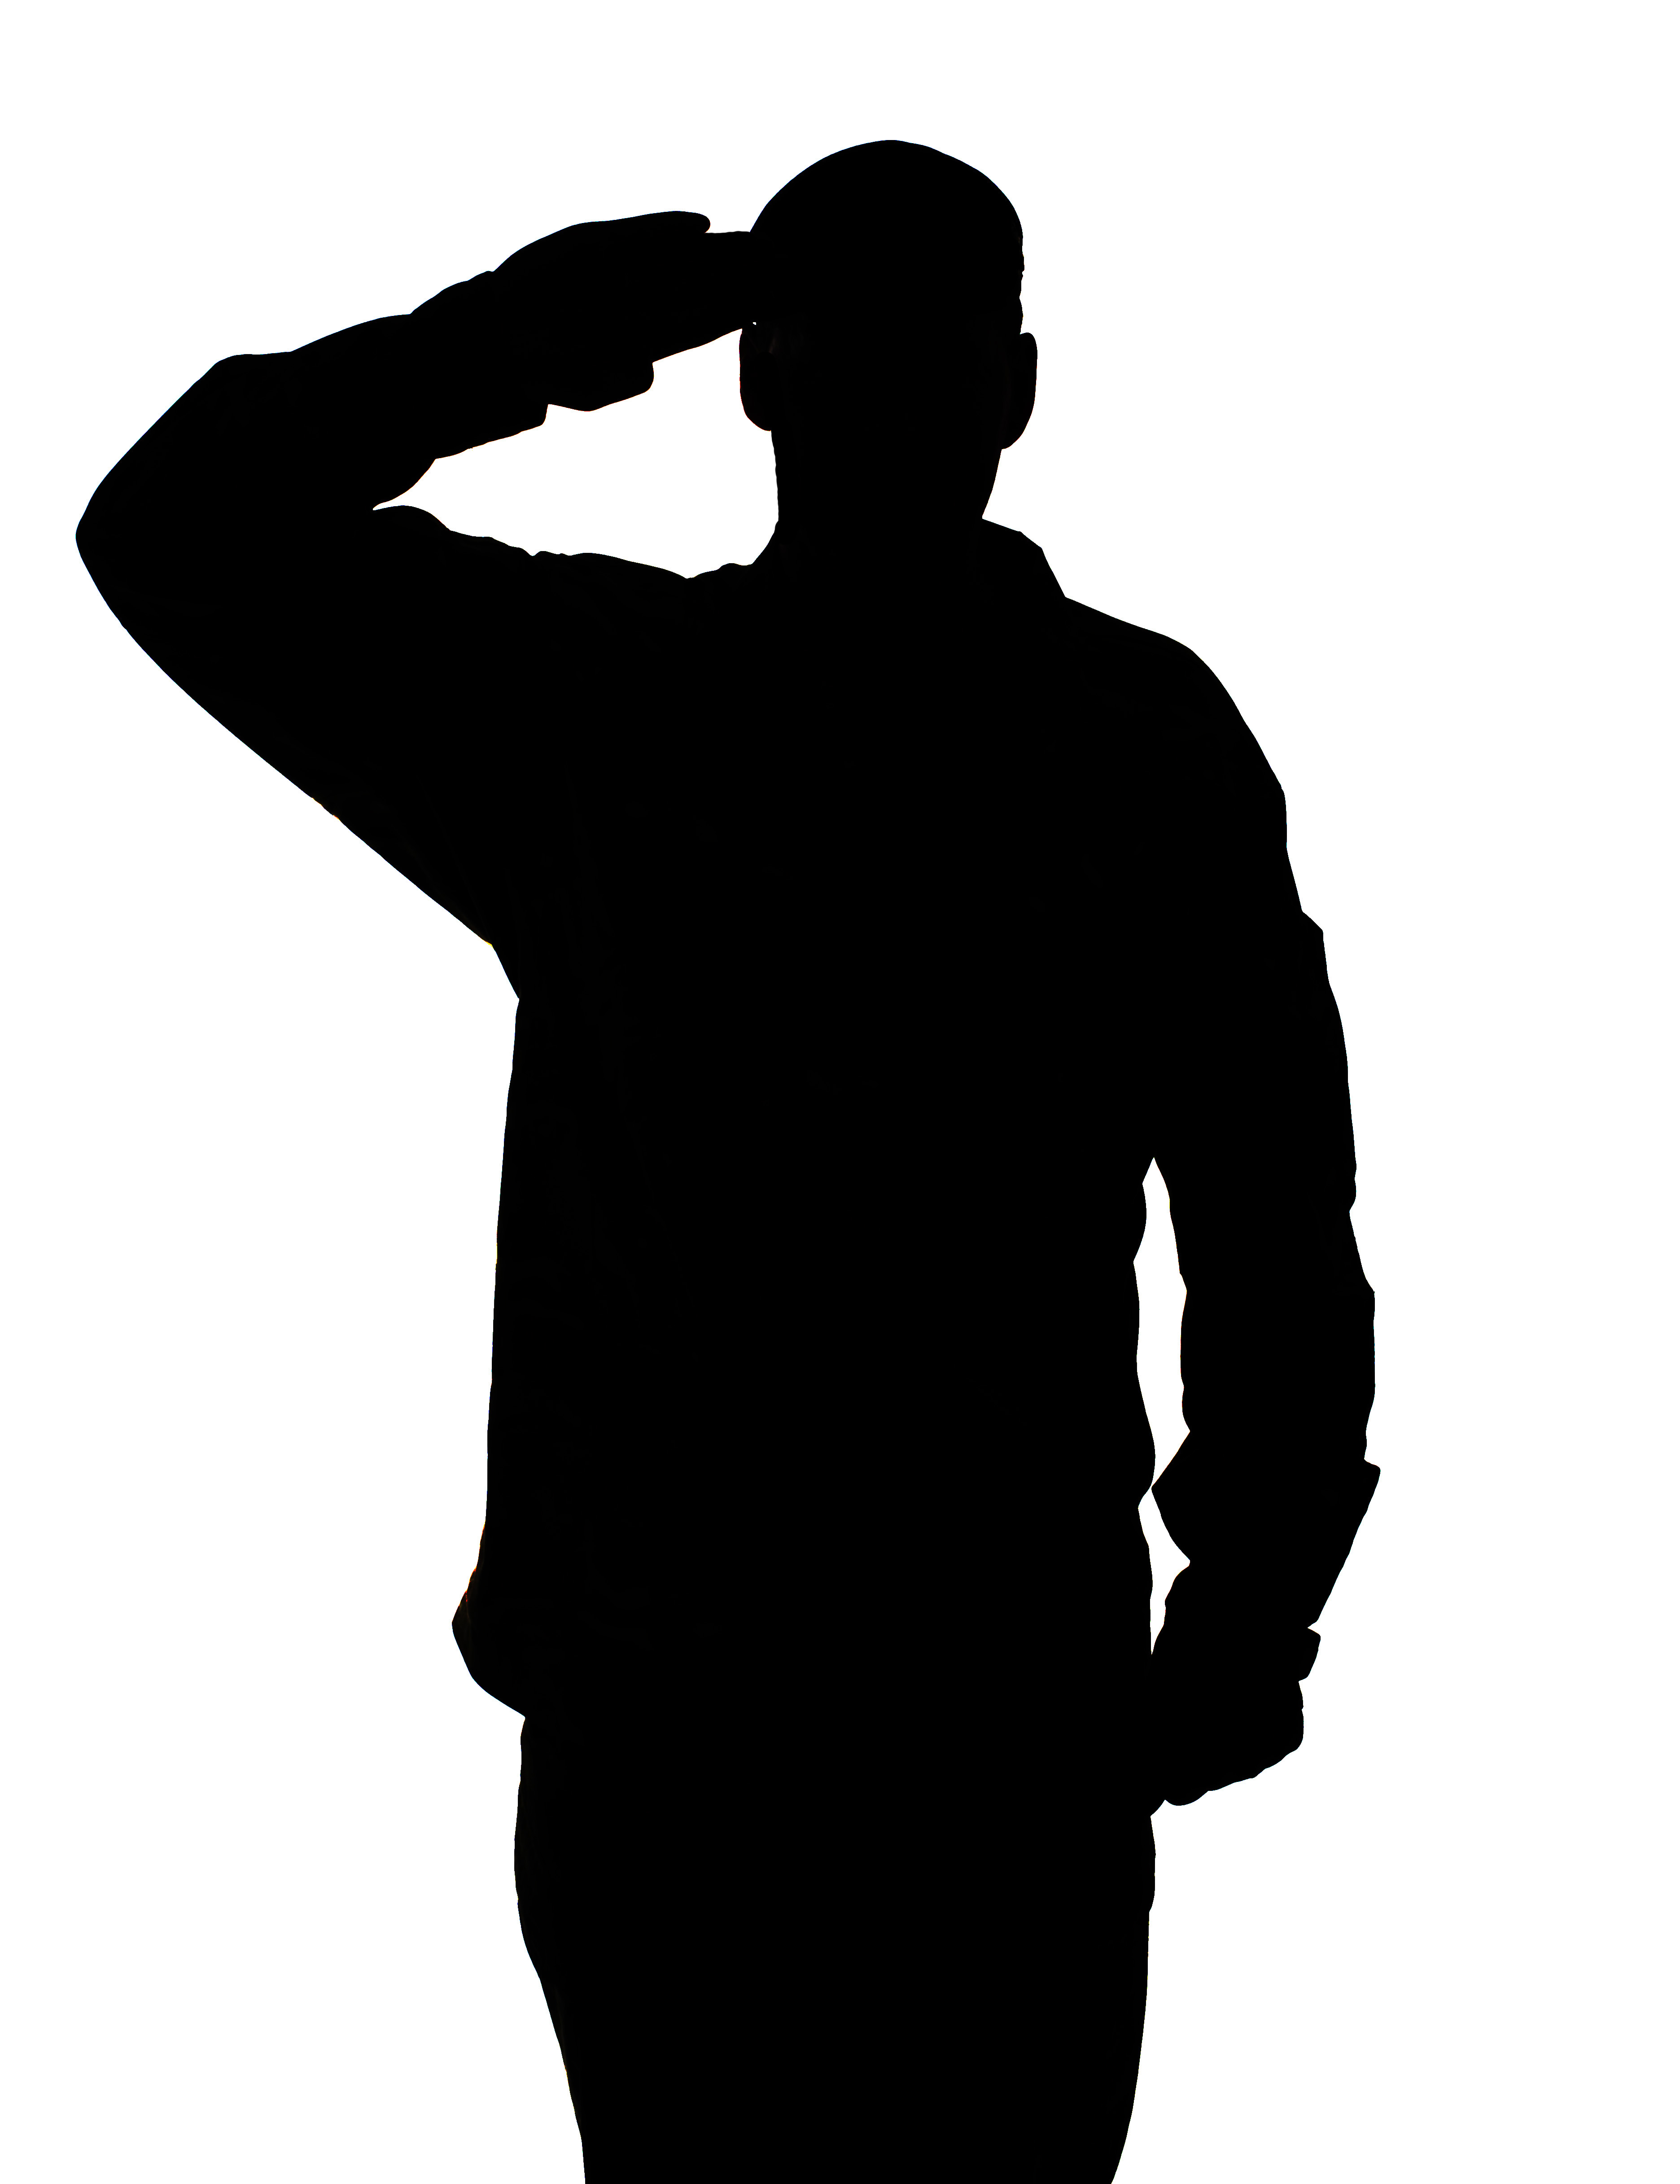 soldier salute silhouette soldier salute silhouette vector at getdrawings free silhouette salute soldier